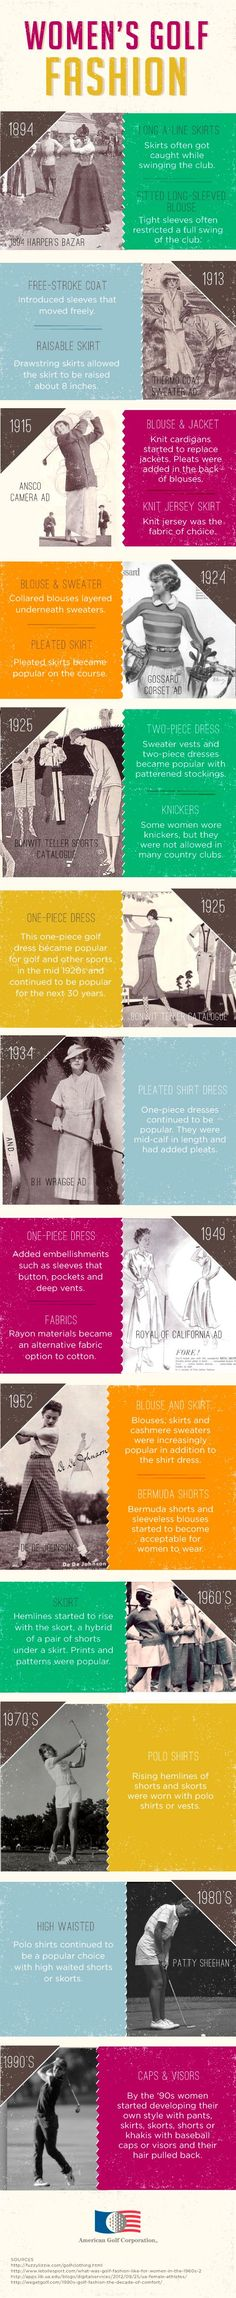 The Lifestyle & #Fashion of Womens Golf.